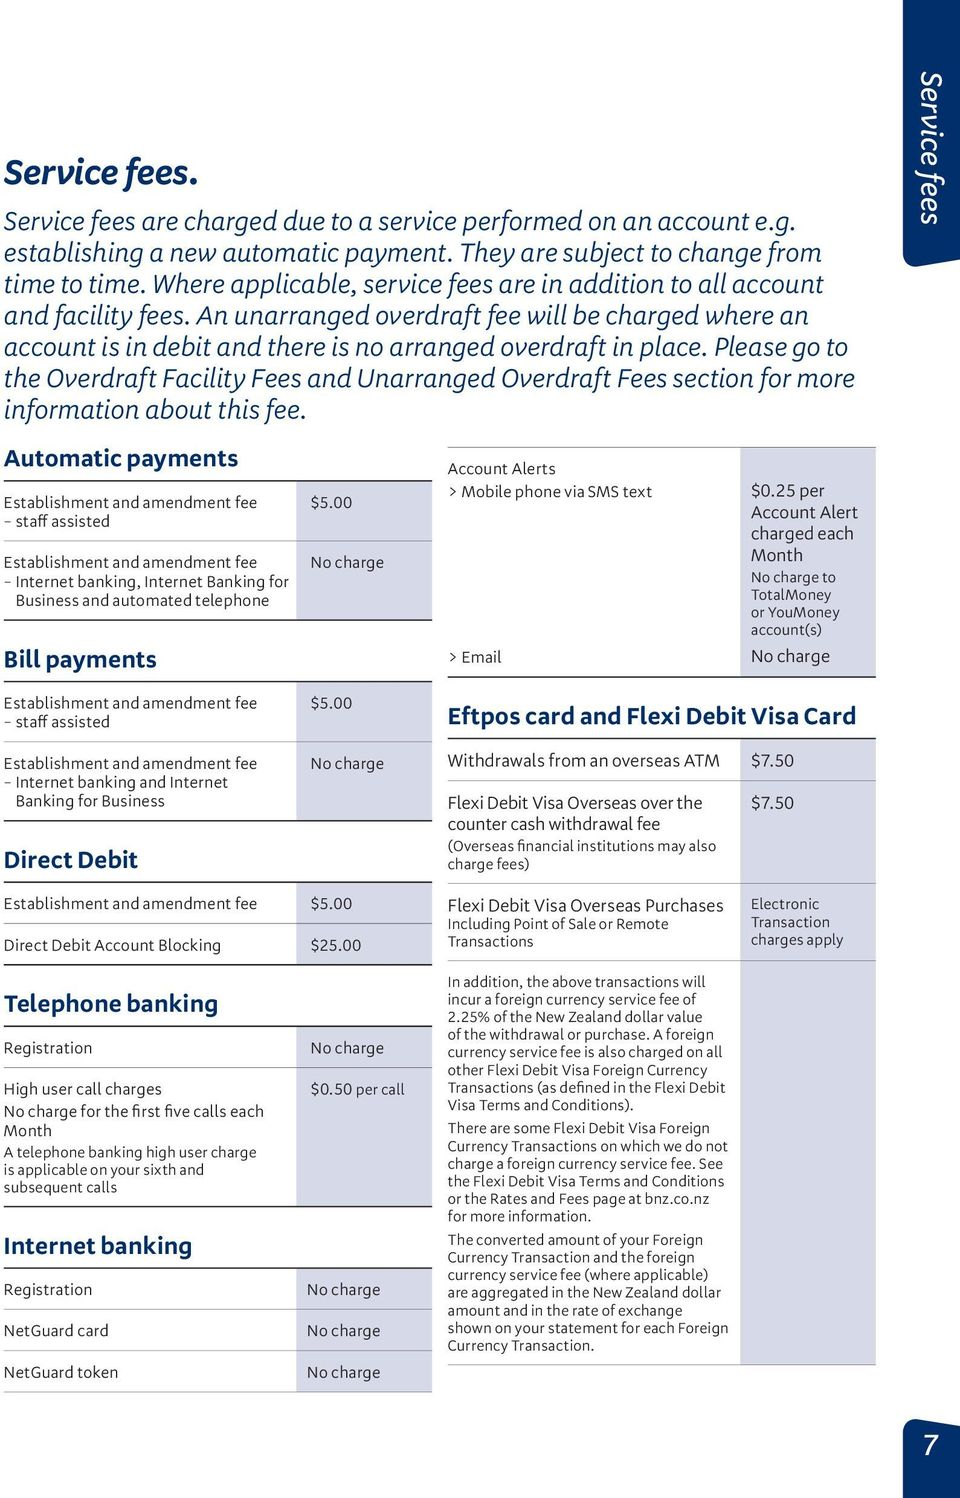 Please go to the Overdraft Facility Fees and Unarranged Overdraft Fees section for more information about this fee.